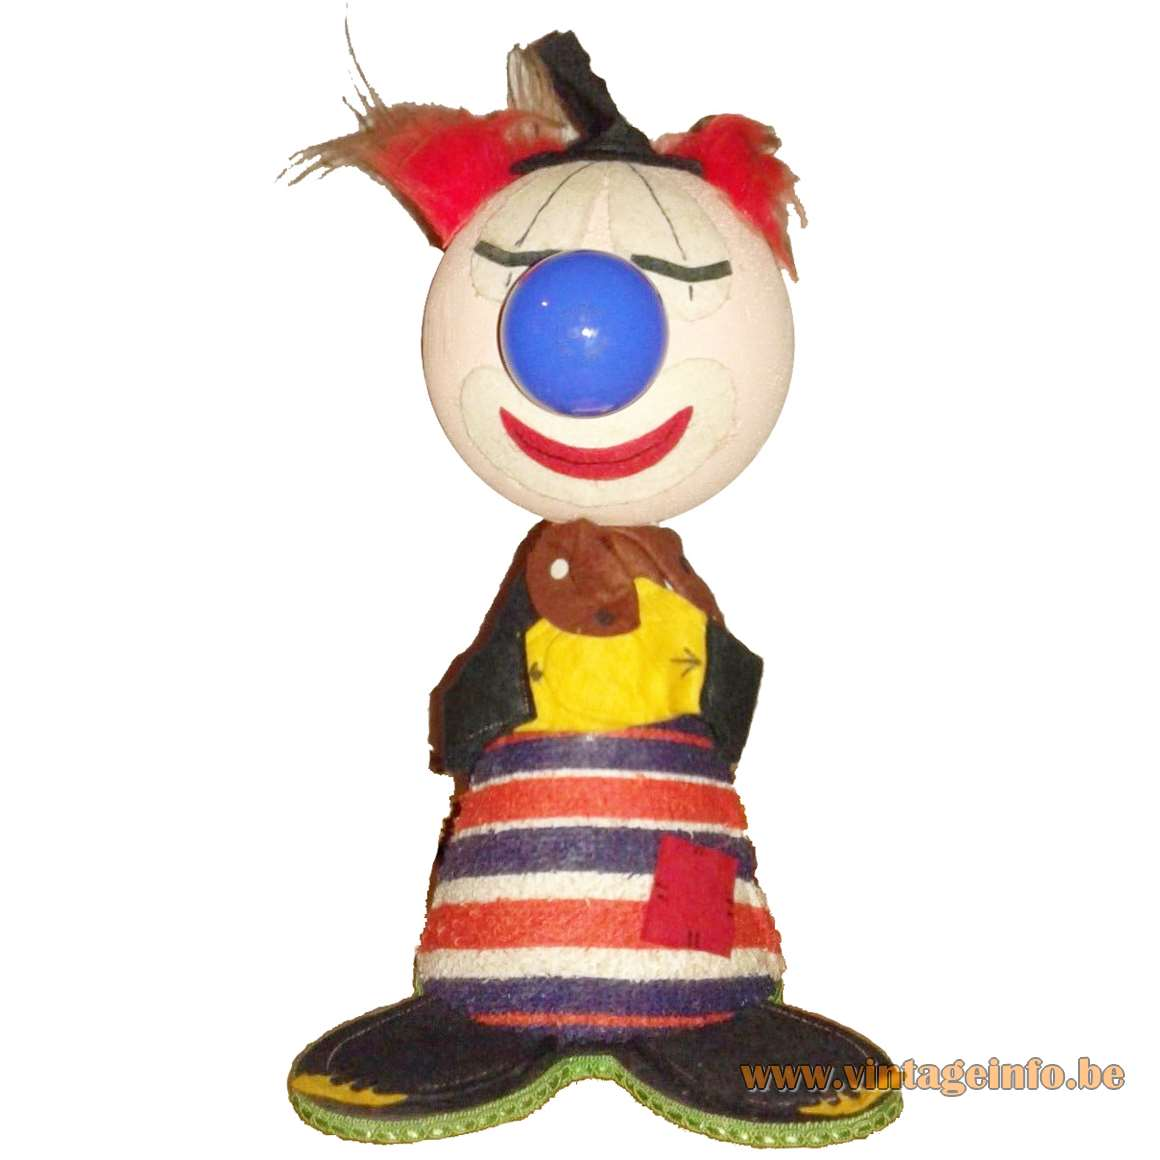 1970s Felt Clown Table Lamp kids night light fabric bedroom MCM 1960s figurine